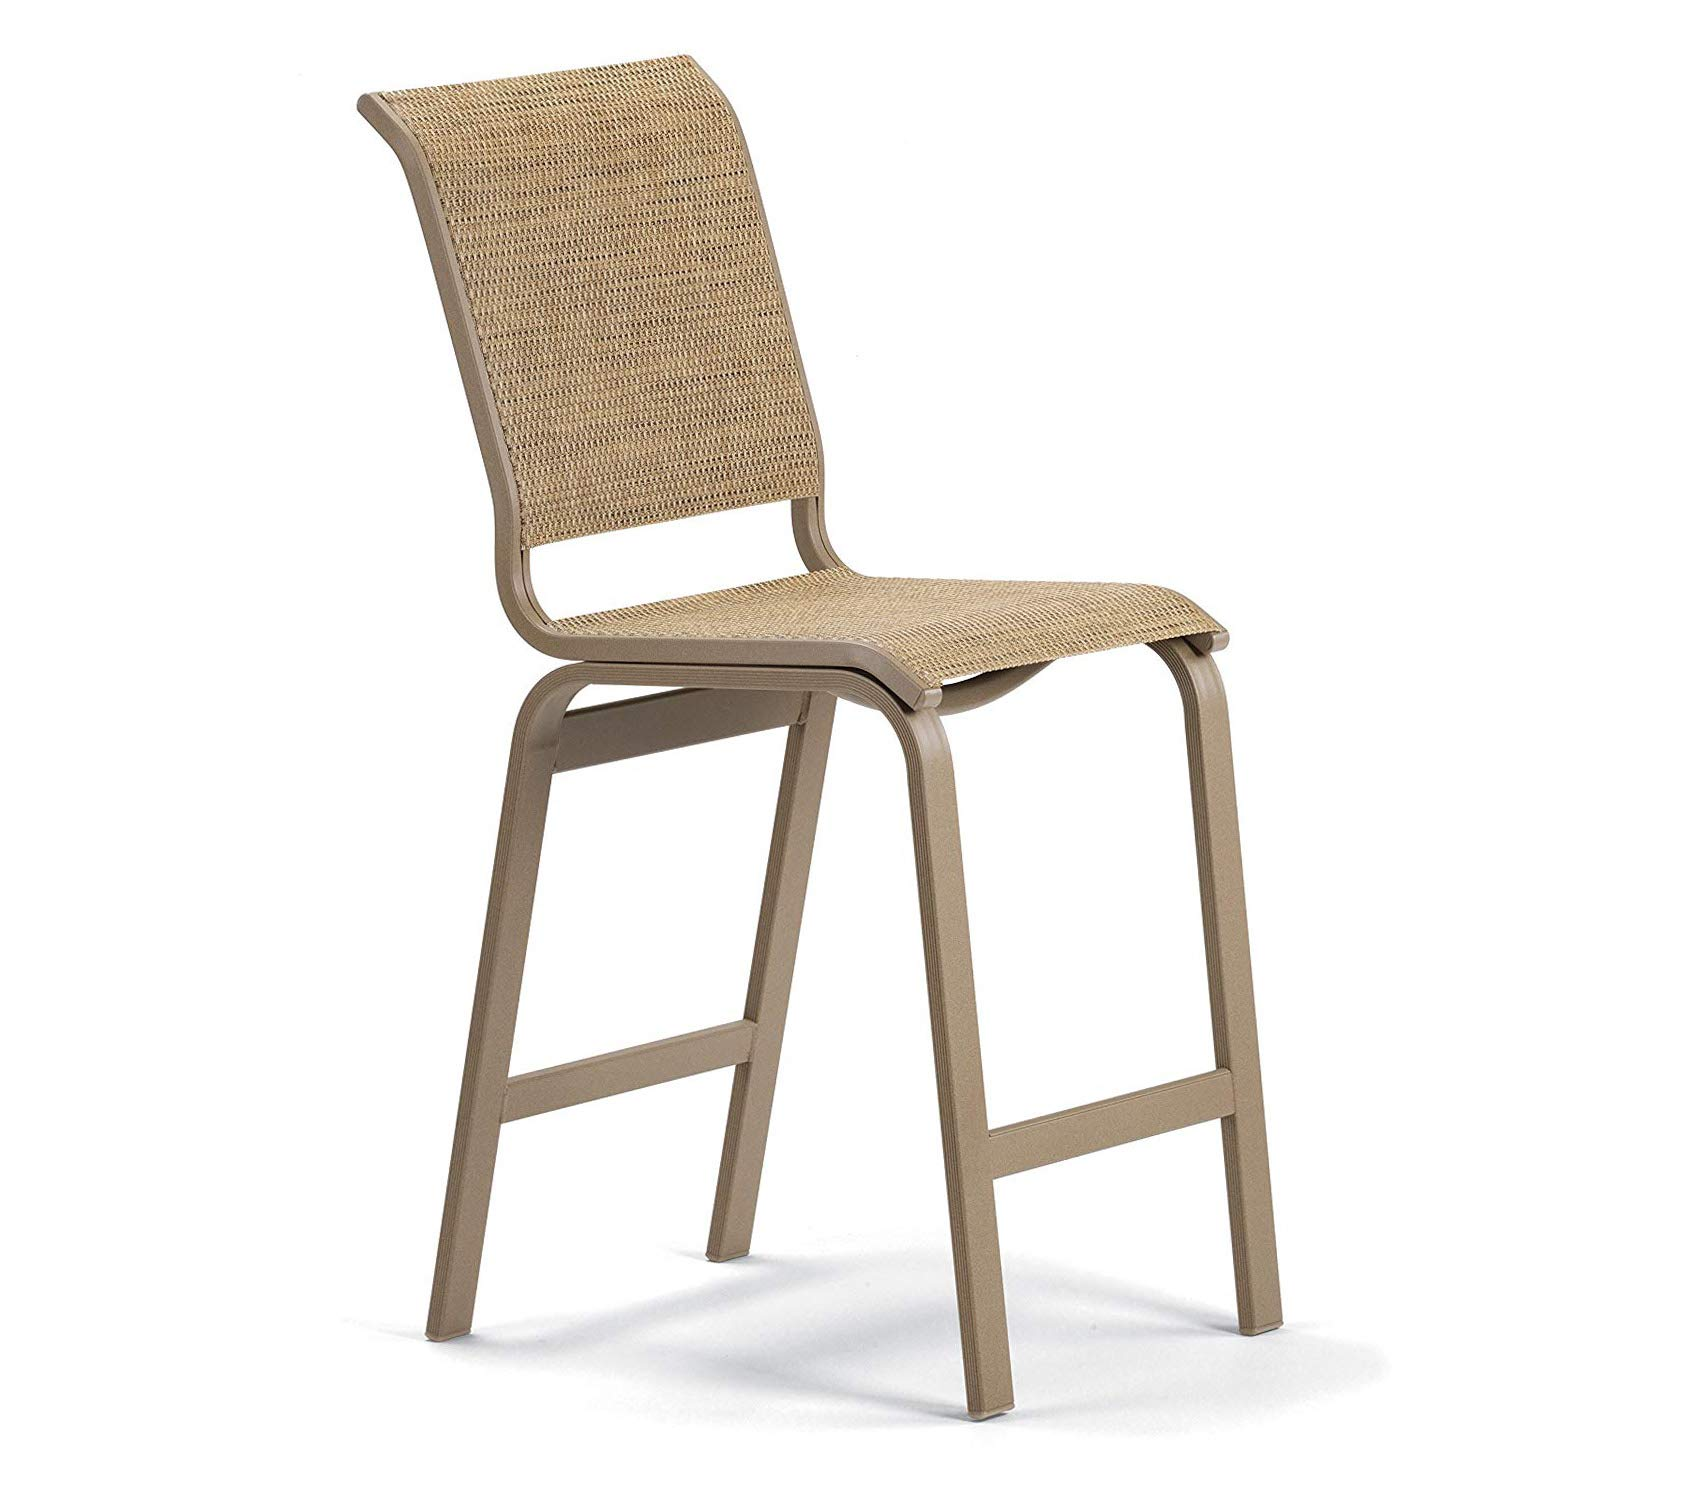 Wood & Style Patio Outdoor Garden Premium Sling Collection Balcony Height Armless Chair, Alloy, Textured Graphite Finish